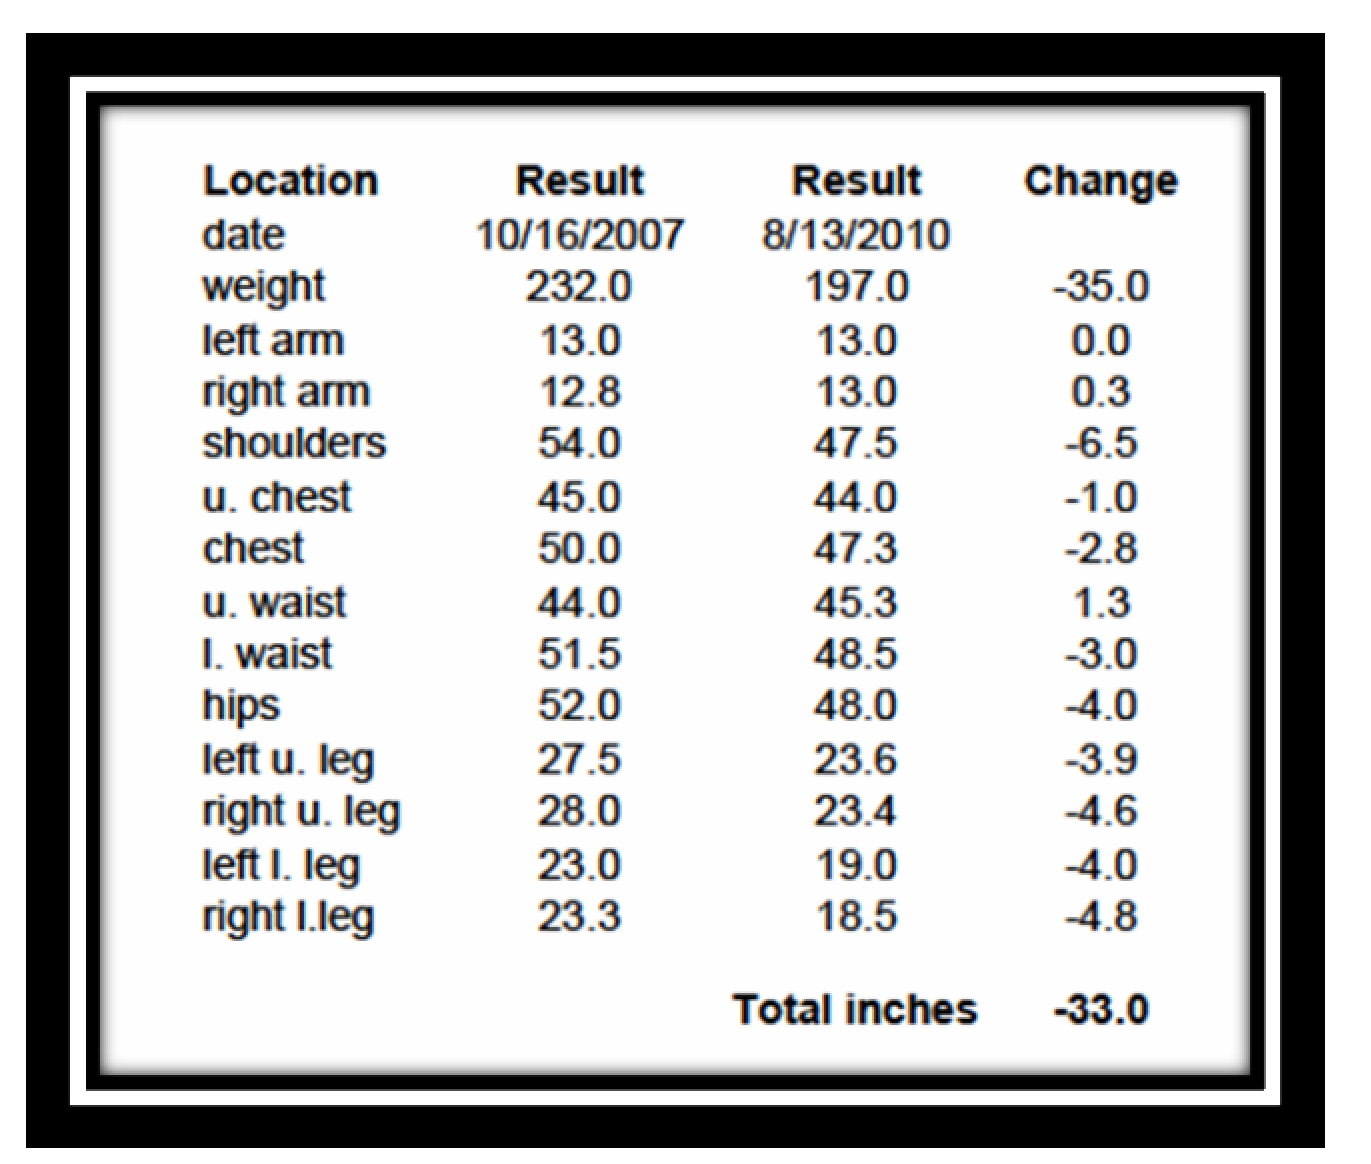 worksheet Measurements In Inches finding the fit girl august 2010 inches tell real story